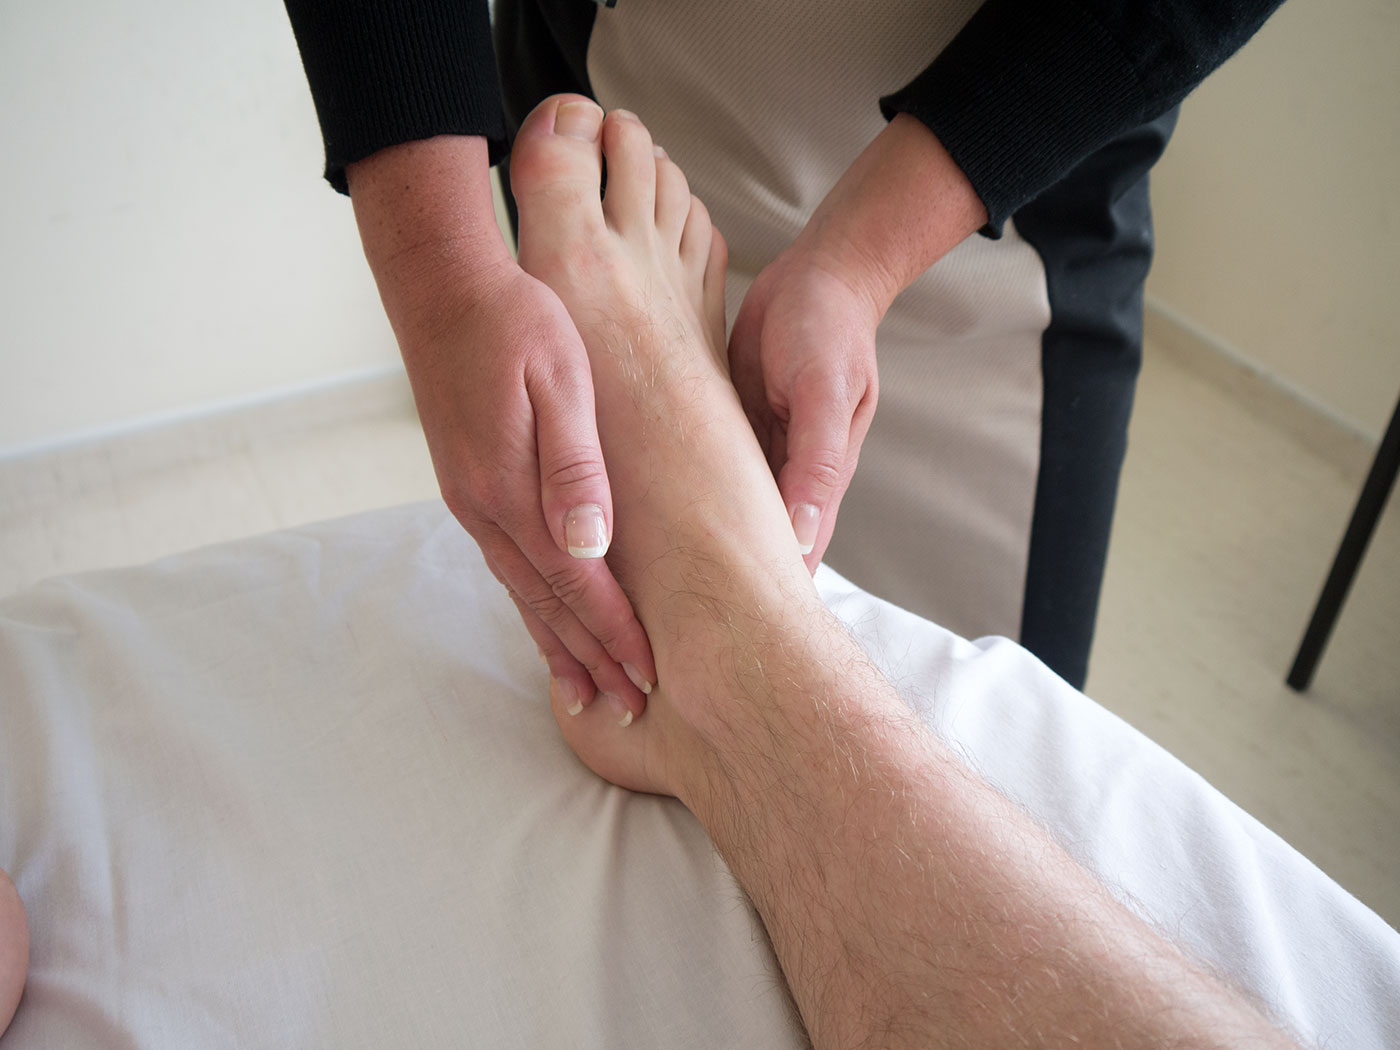 Palpate the ankle